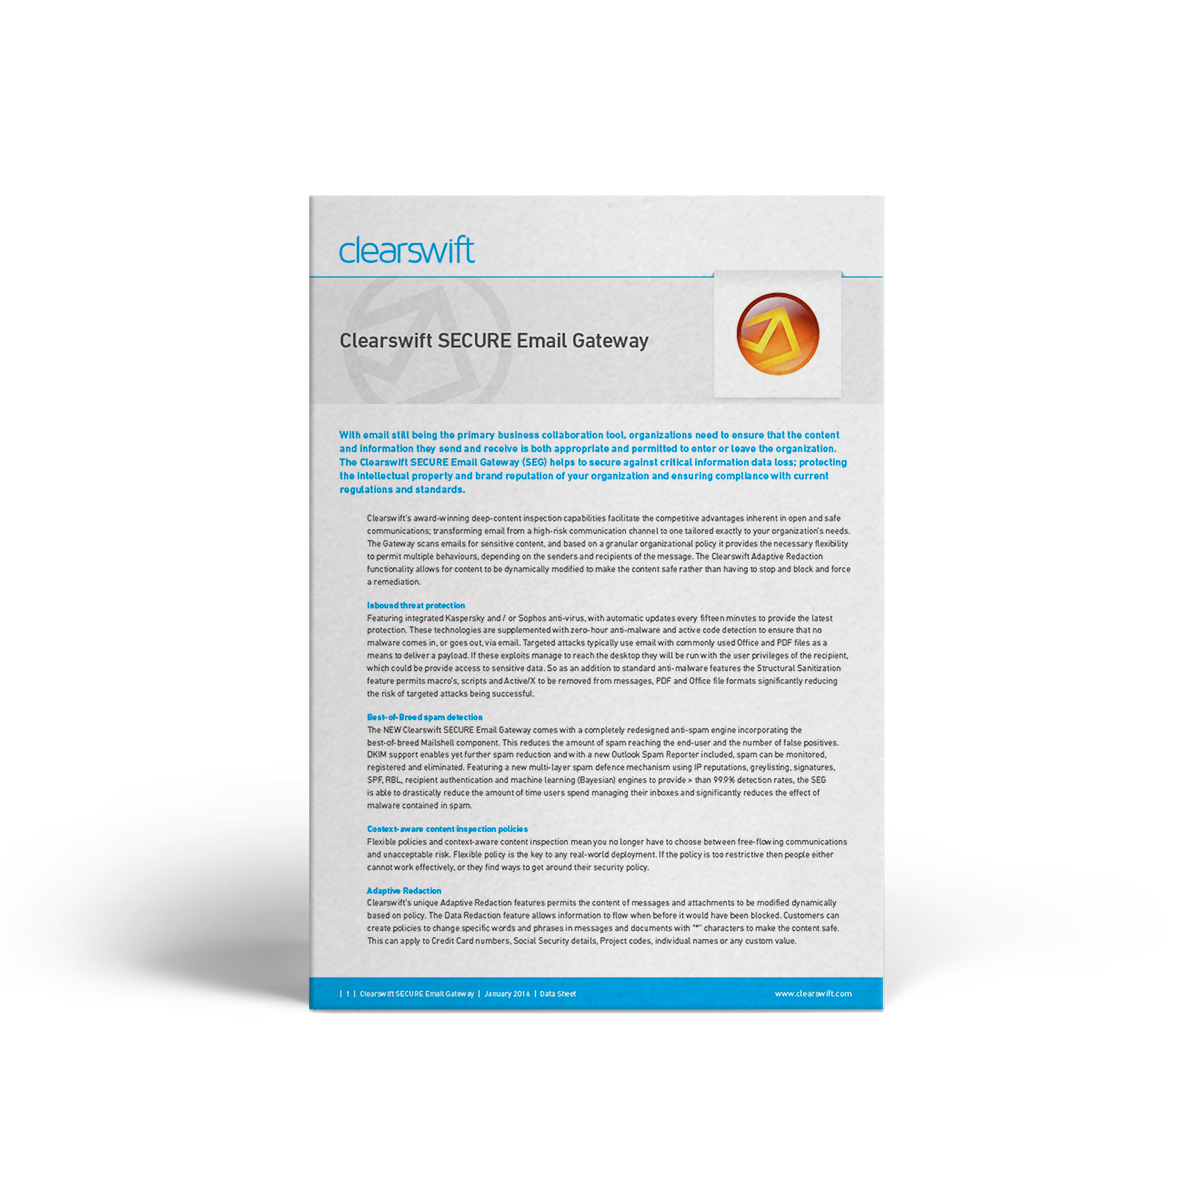 Clearswift SECURE Email Gateway datasheet